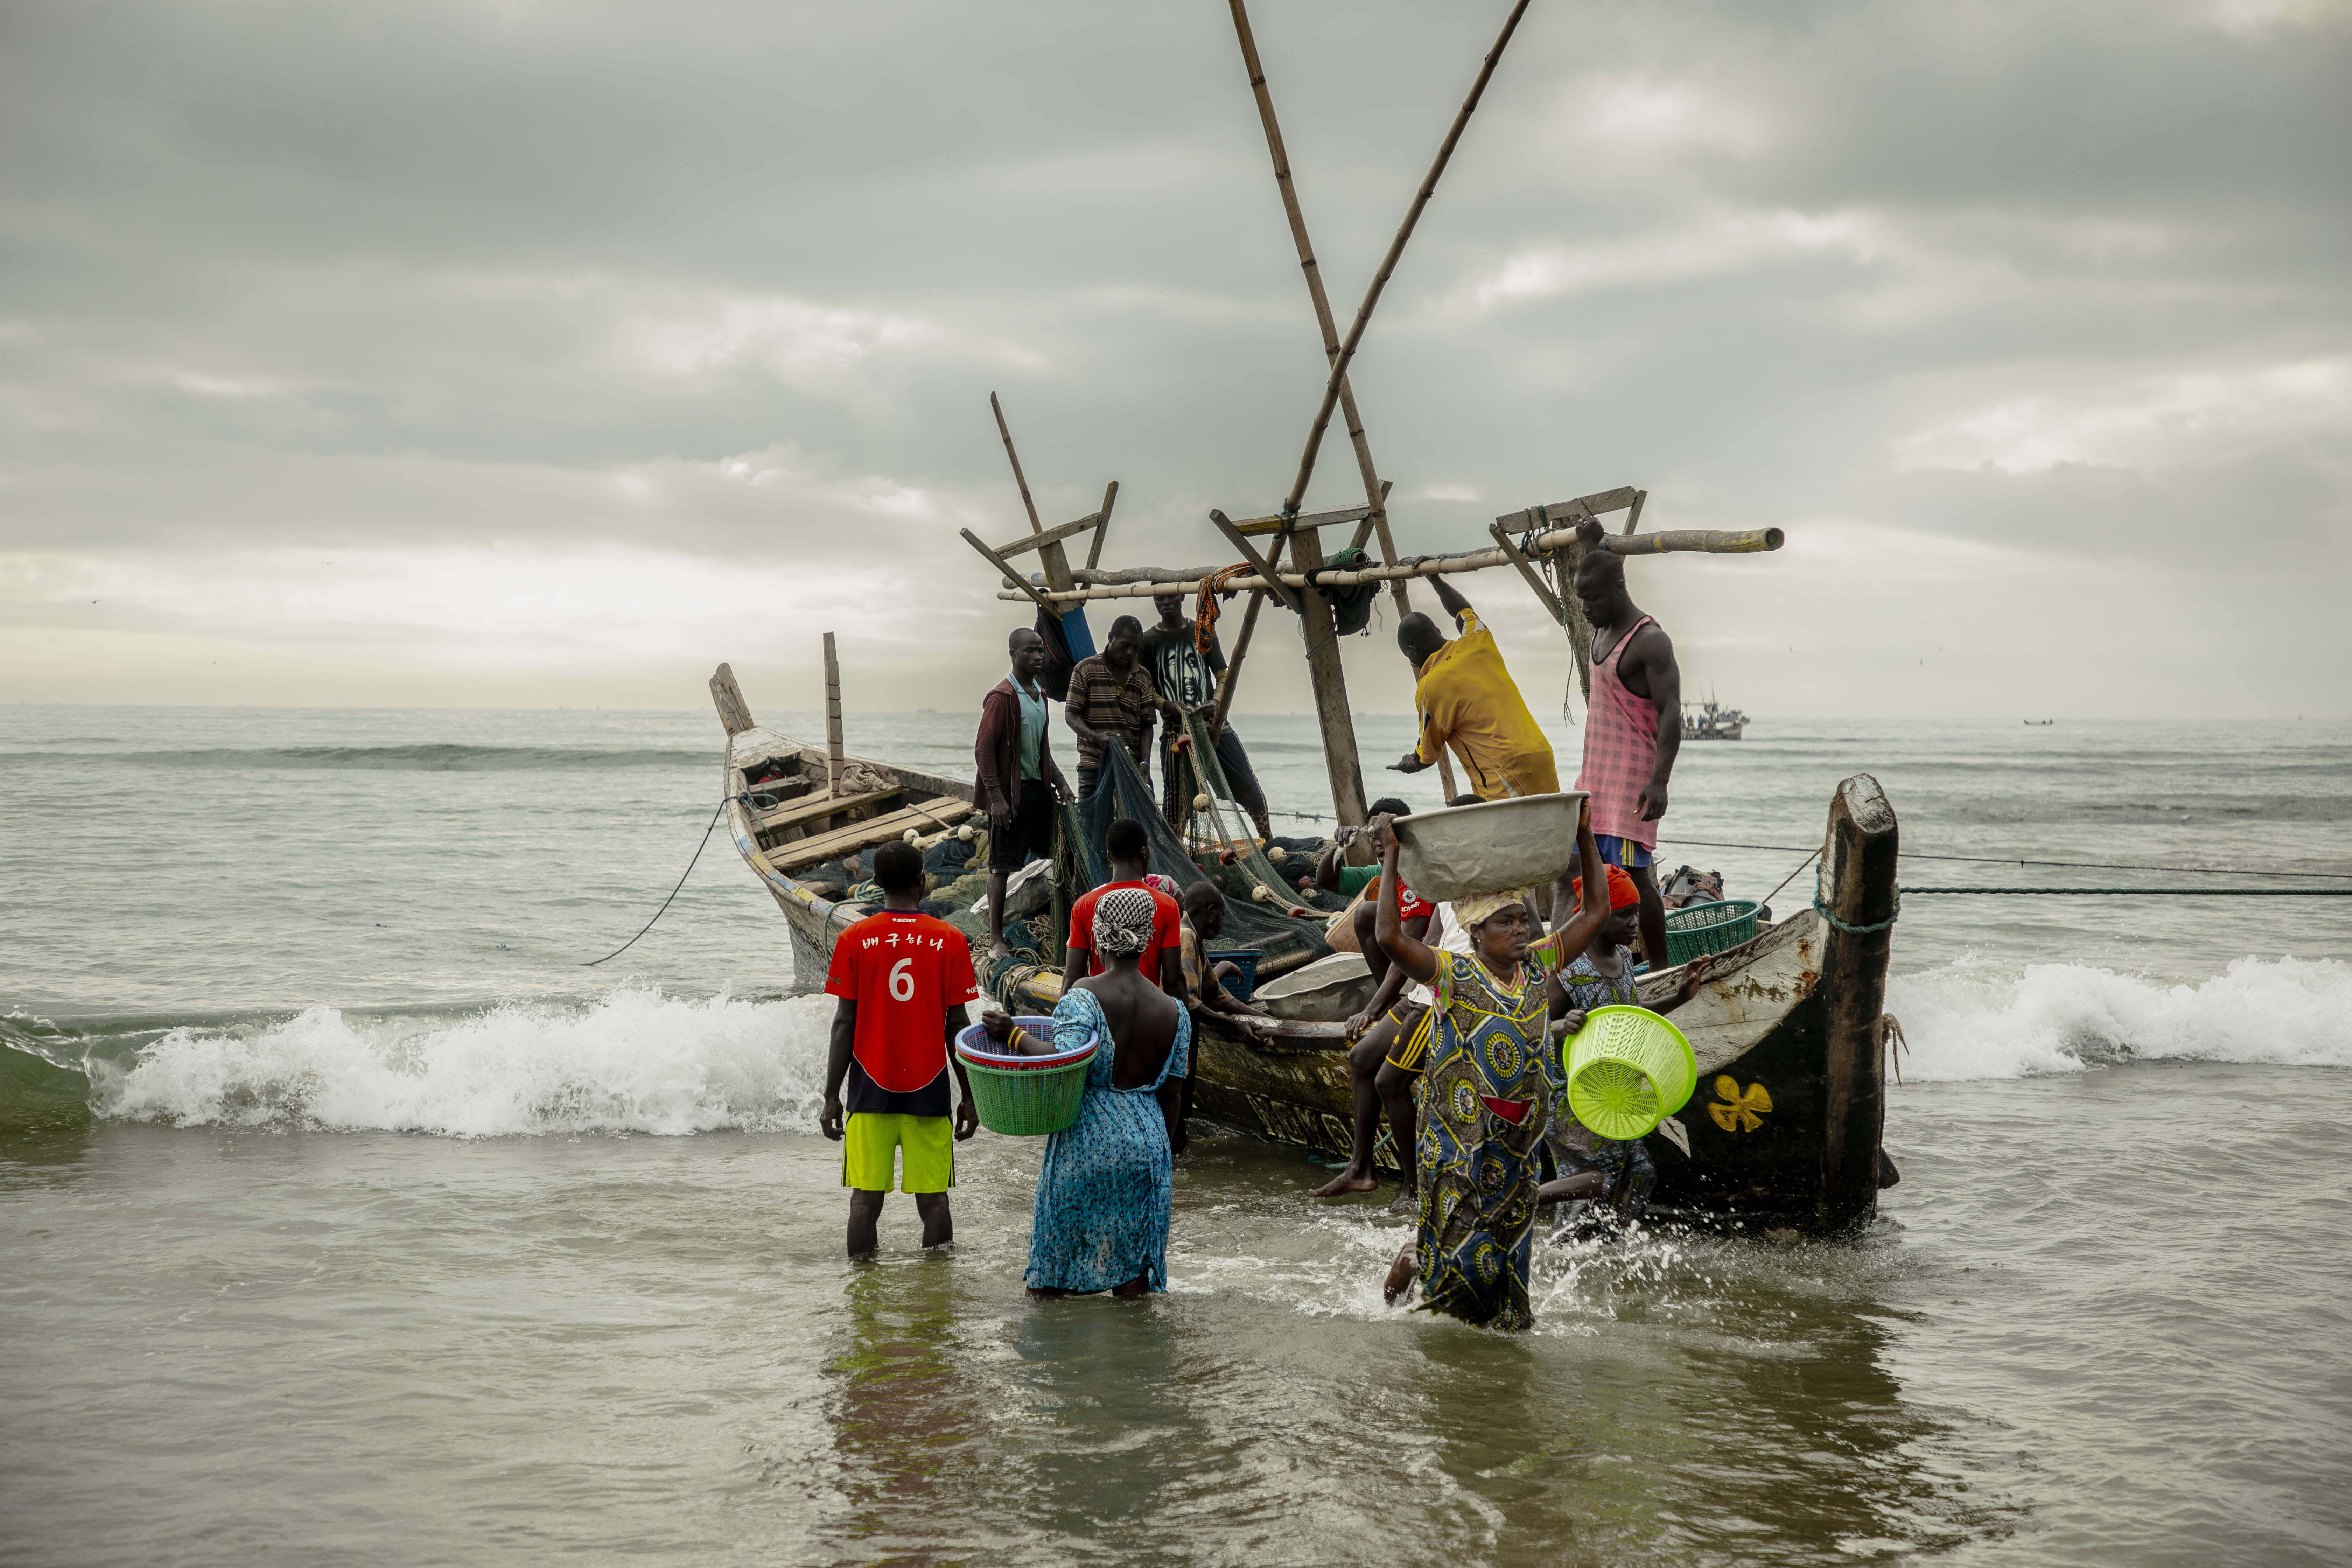 Human rights of Ghana's coastal communities threatened by failure to tackle illegal fishing